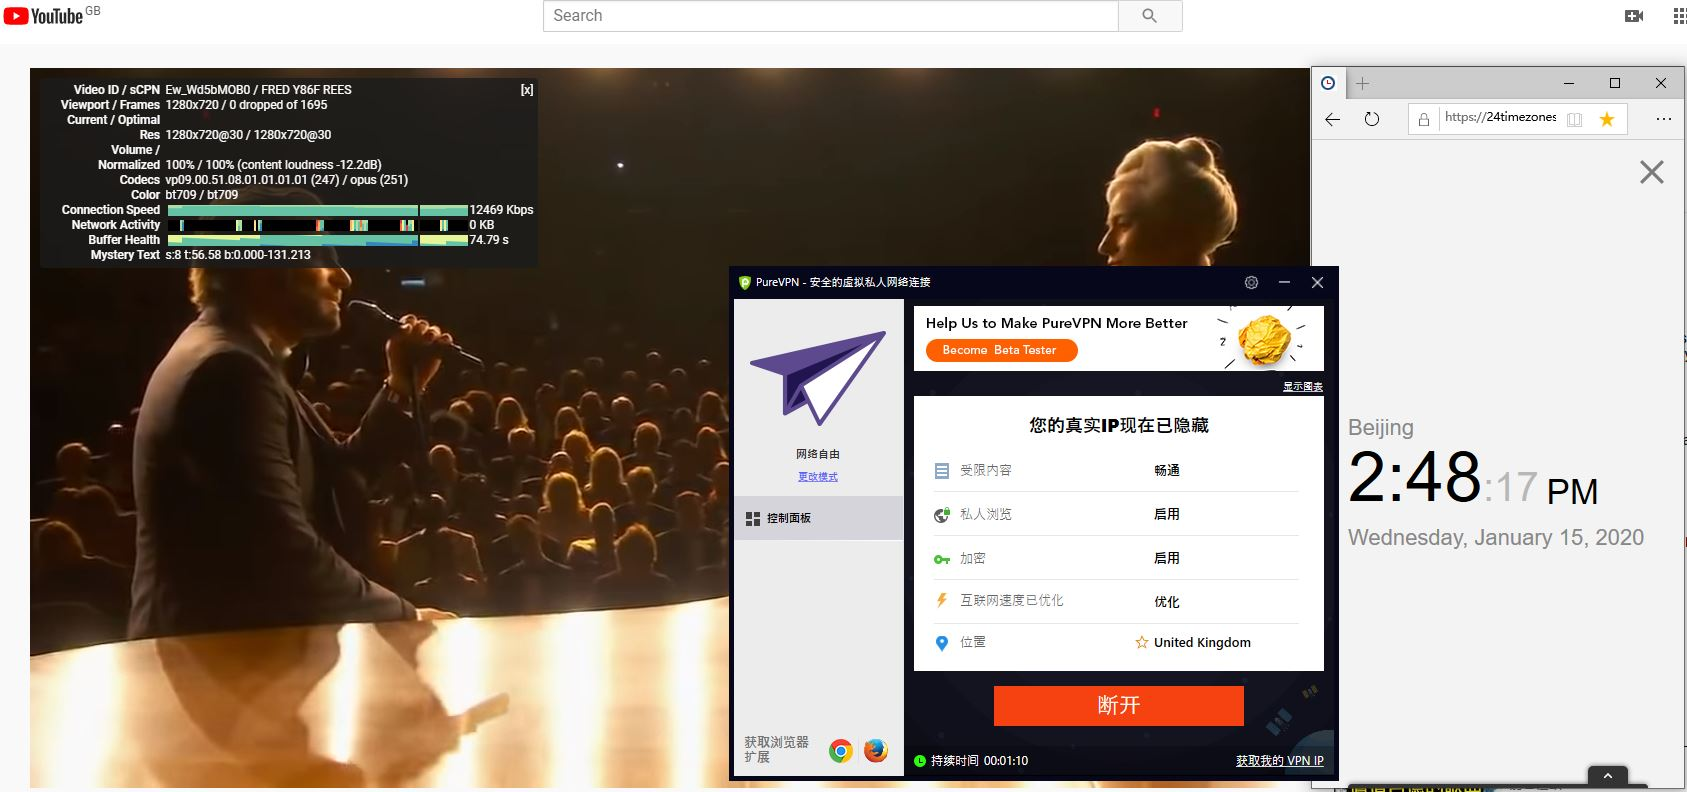 Windows10 PureVPN United Kingdom 中国VPN翻墙 科学上网 YouTube连接速度 VPN测速 - 20200115